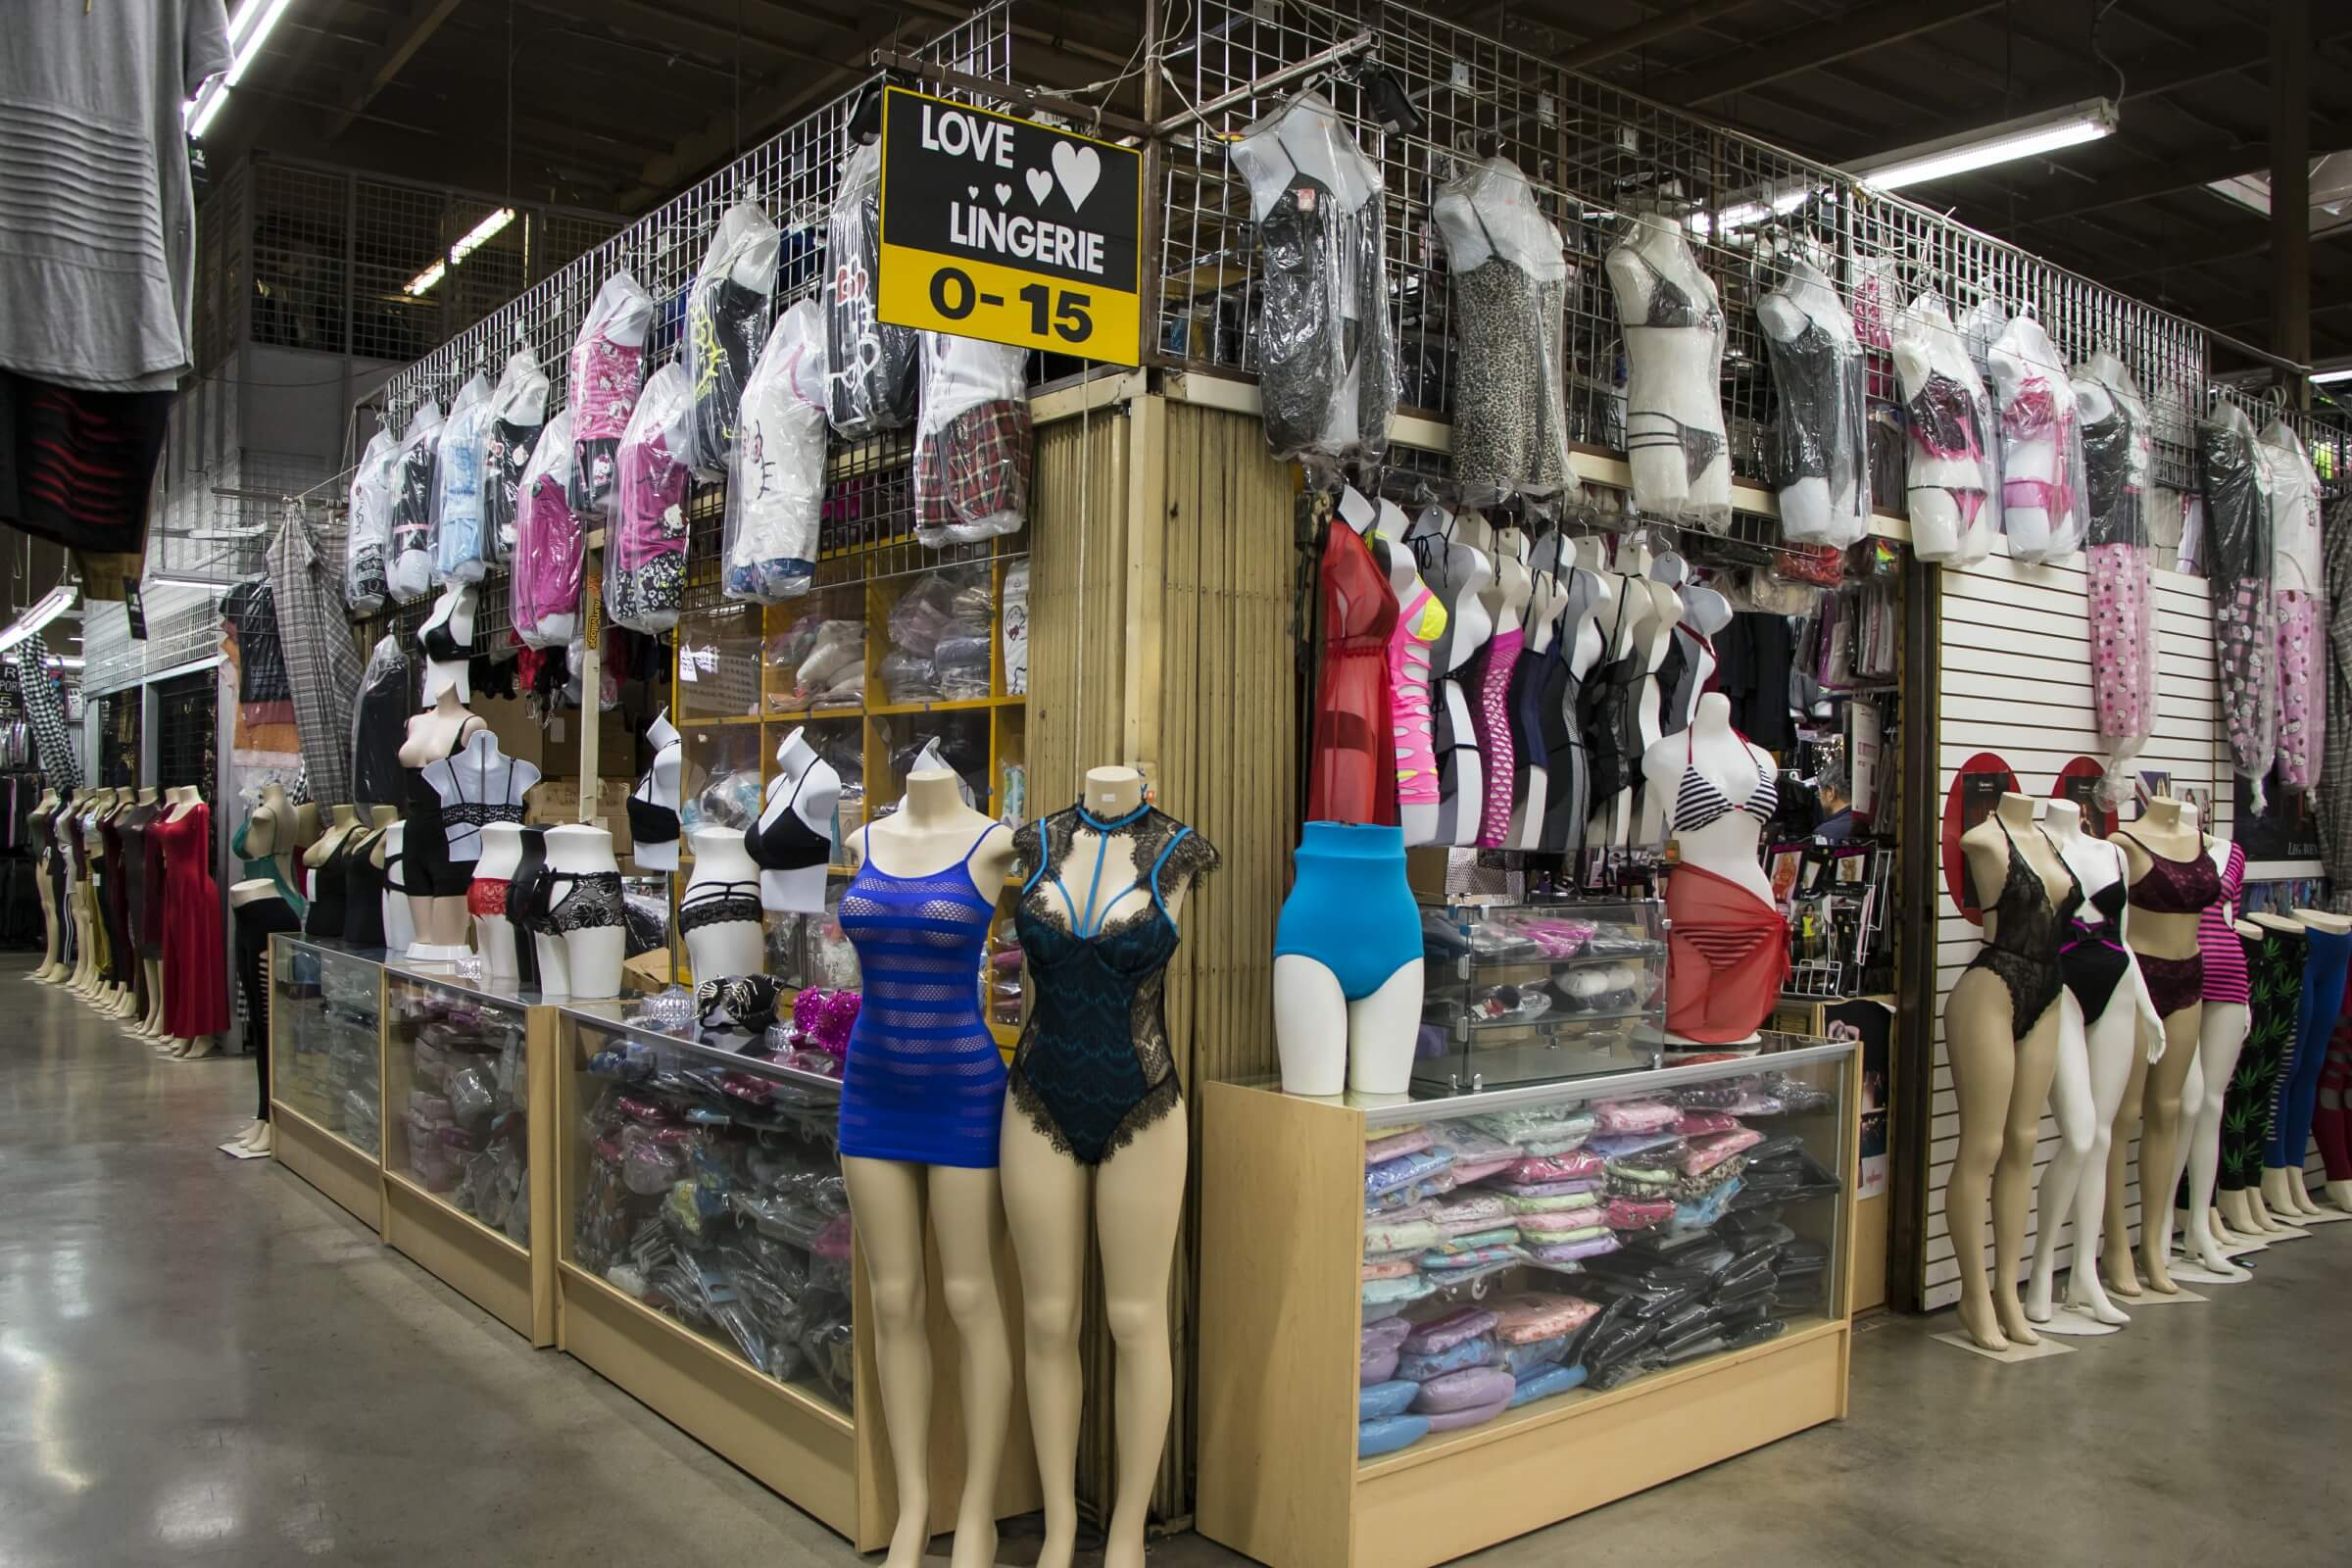 779a48a21 Lingerie Shop in Los Angeles - Slauson Super Mall